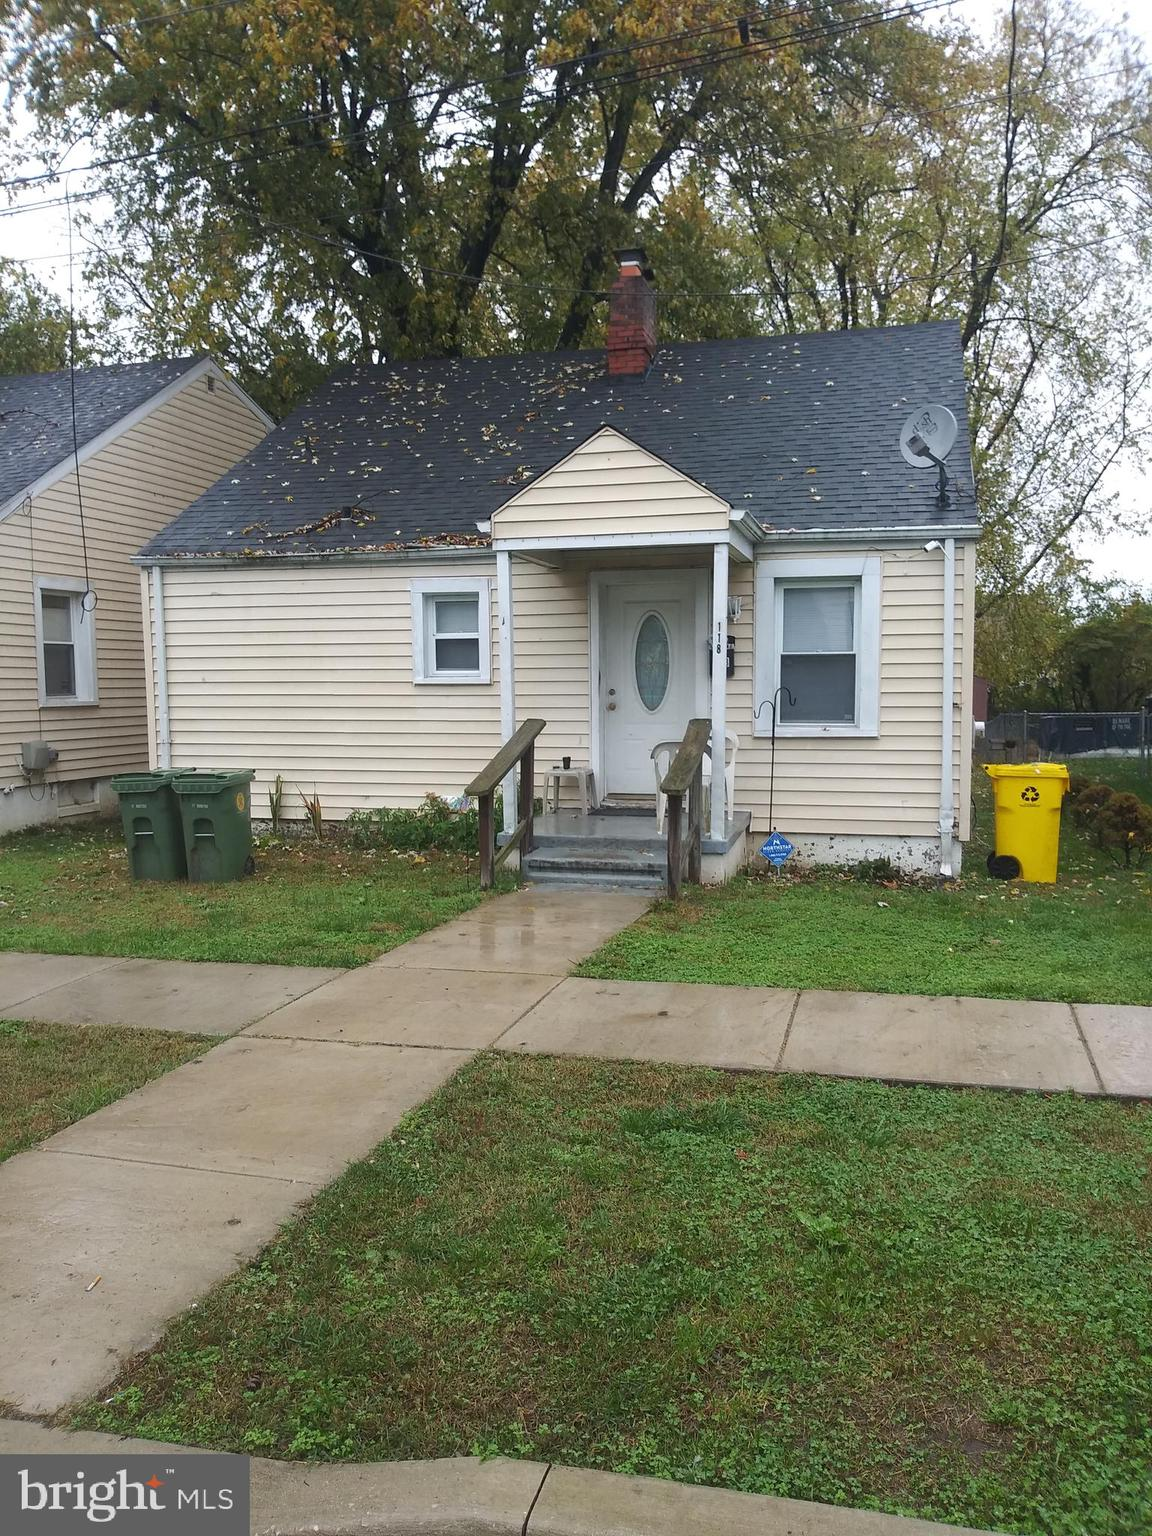 INVESTOR OPPORTUNITY.    SINGLE FAMILY HOME IN AA COUNTY ON LARGE LOT.   TENANT OCCUPIED AT $1200 PER MONTH.    KEEP AS RENTAL OR UPGRADE AND RESELL.  118 FRANKLIN ALSO FOR SALE.  BUY BOTH AT A REDUCED PRICE.